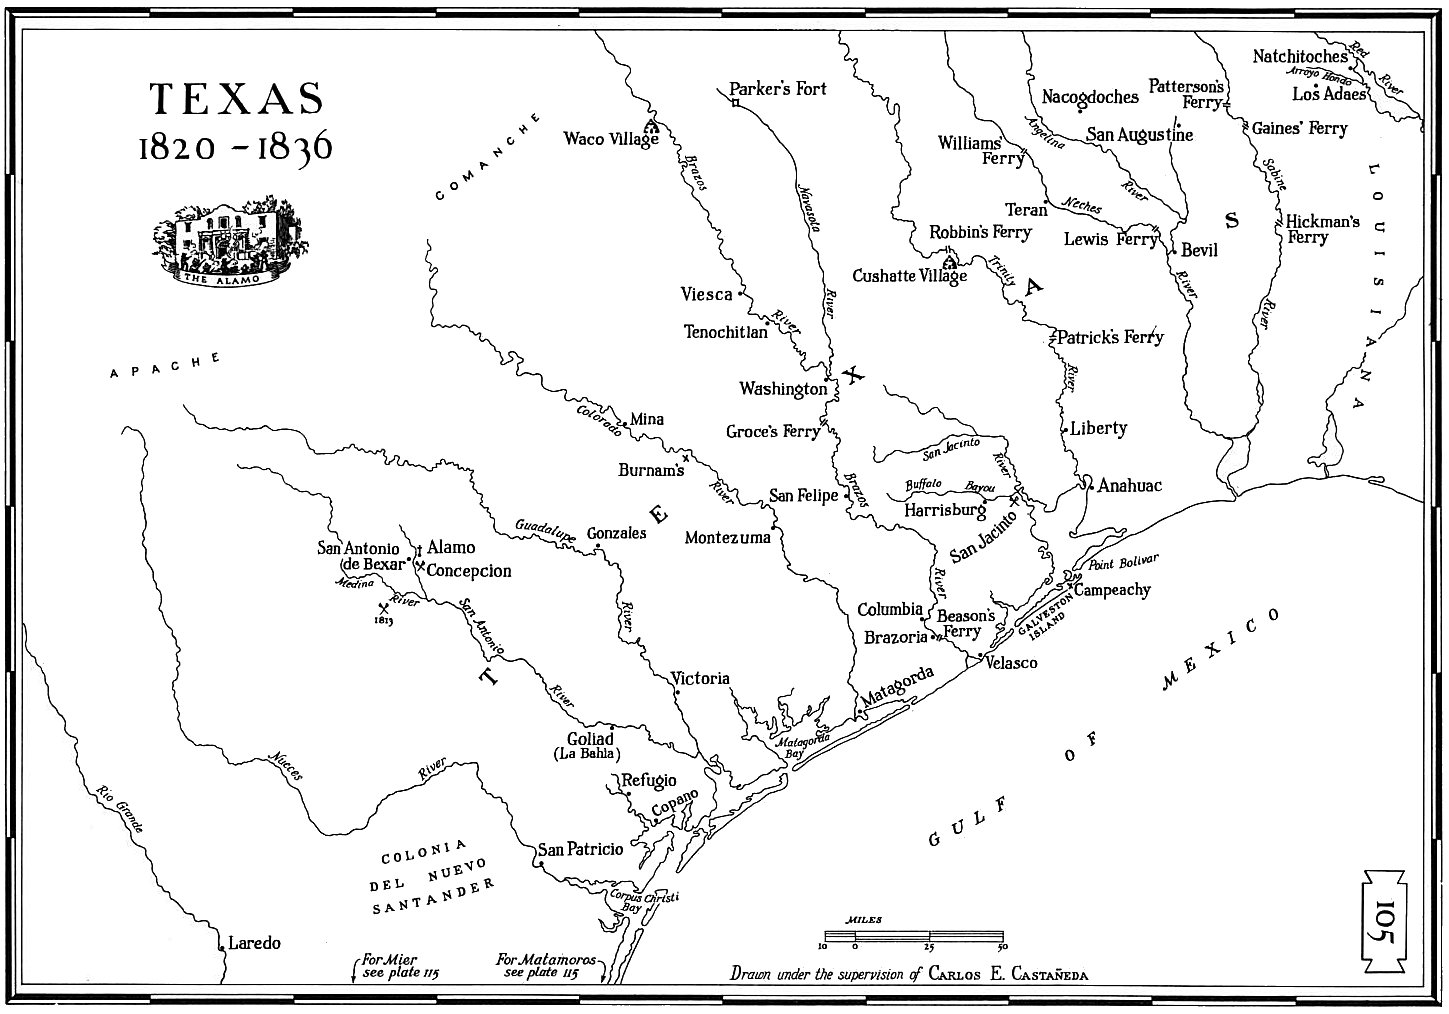 Map Of Texas 1836.Texas Maps Texas Digital Map Library Table Of Contents United